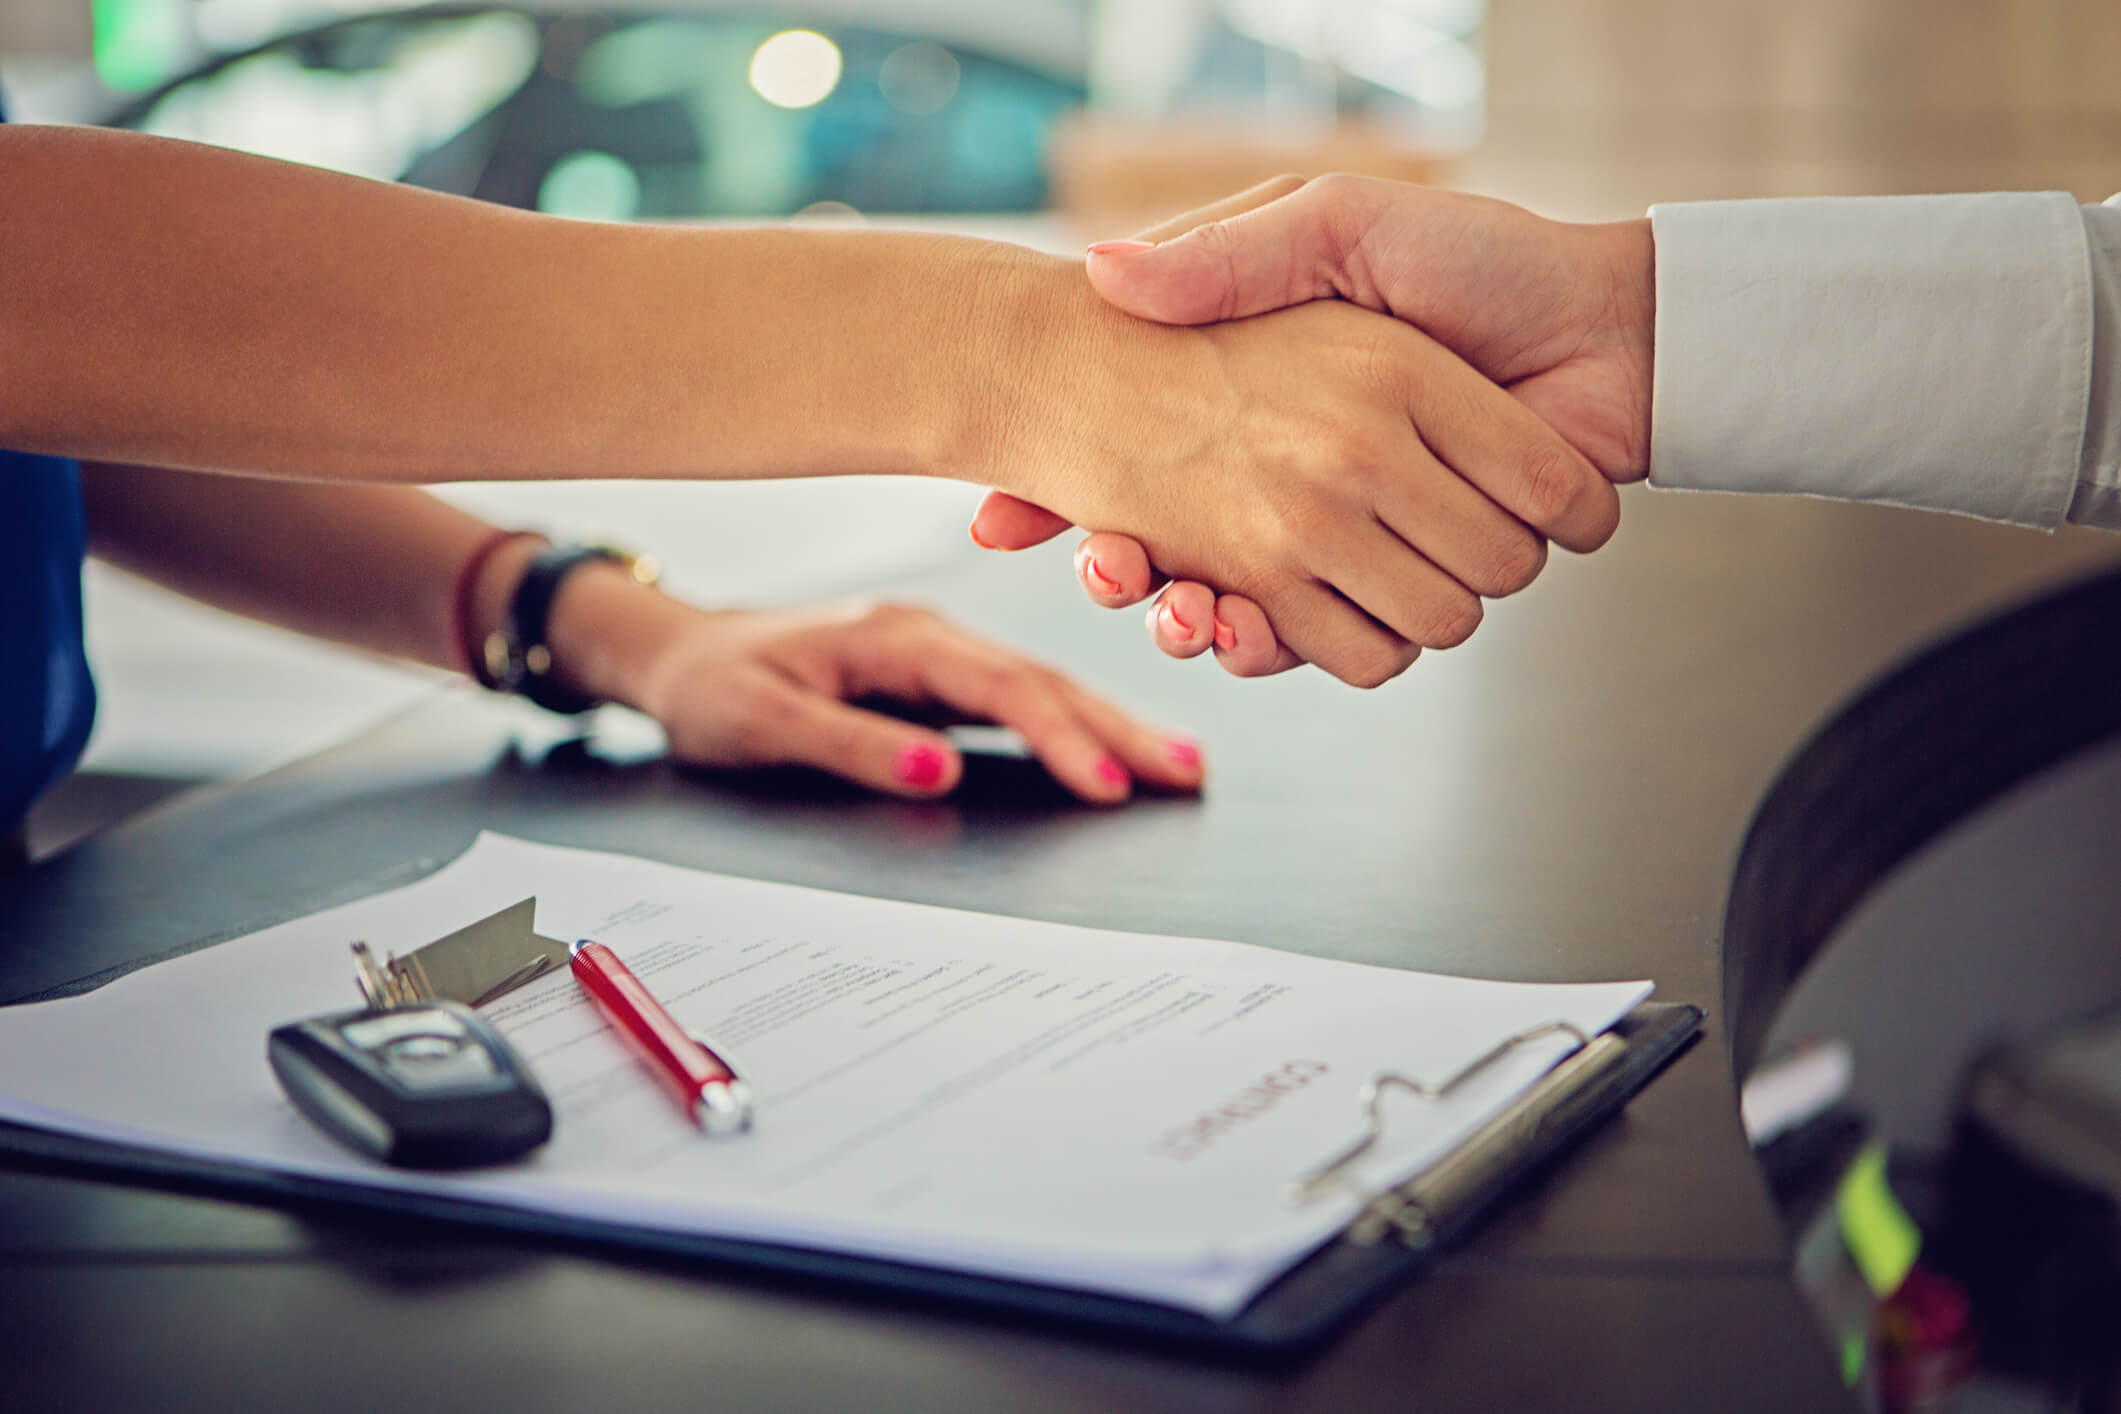 This is a photo of two peeople shaking hands, one being a woman, after completing a vehicle purchase. This represents selling a car with title loans debt